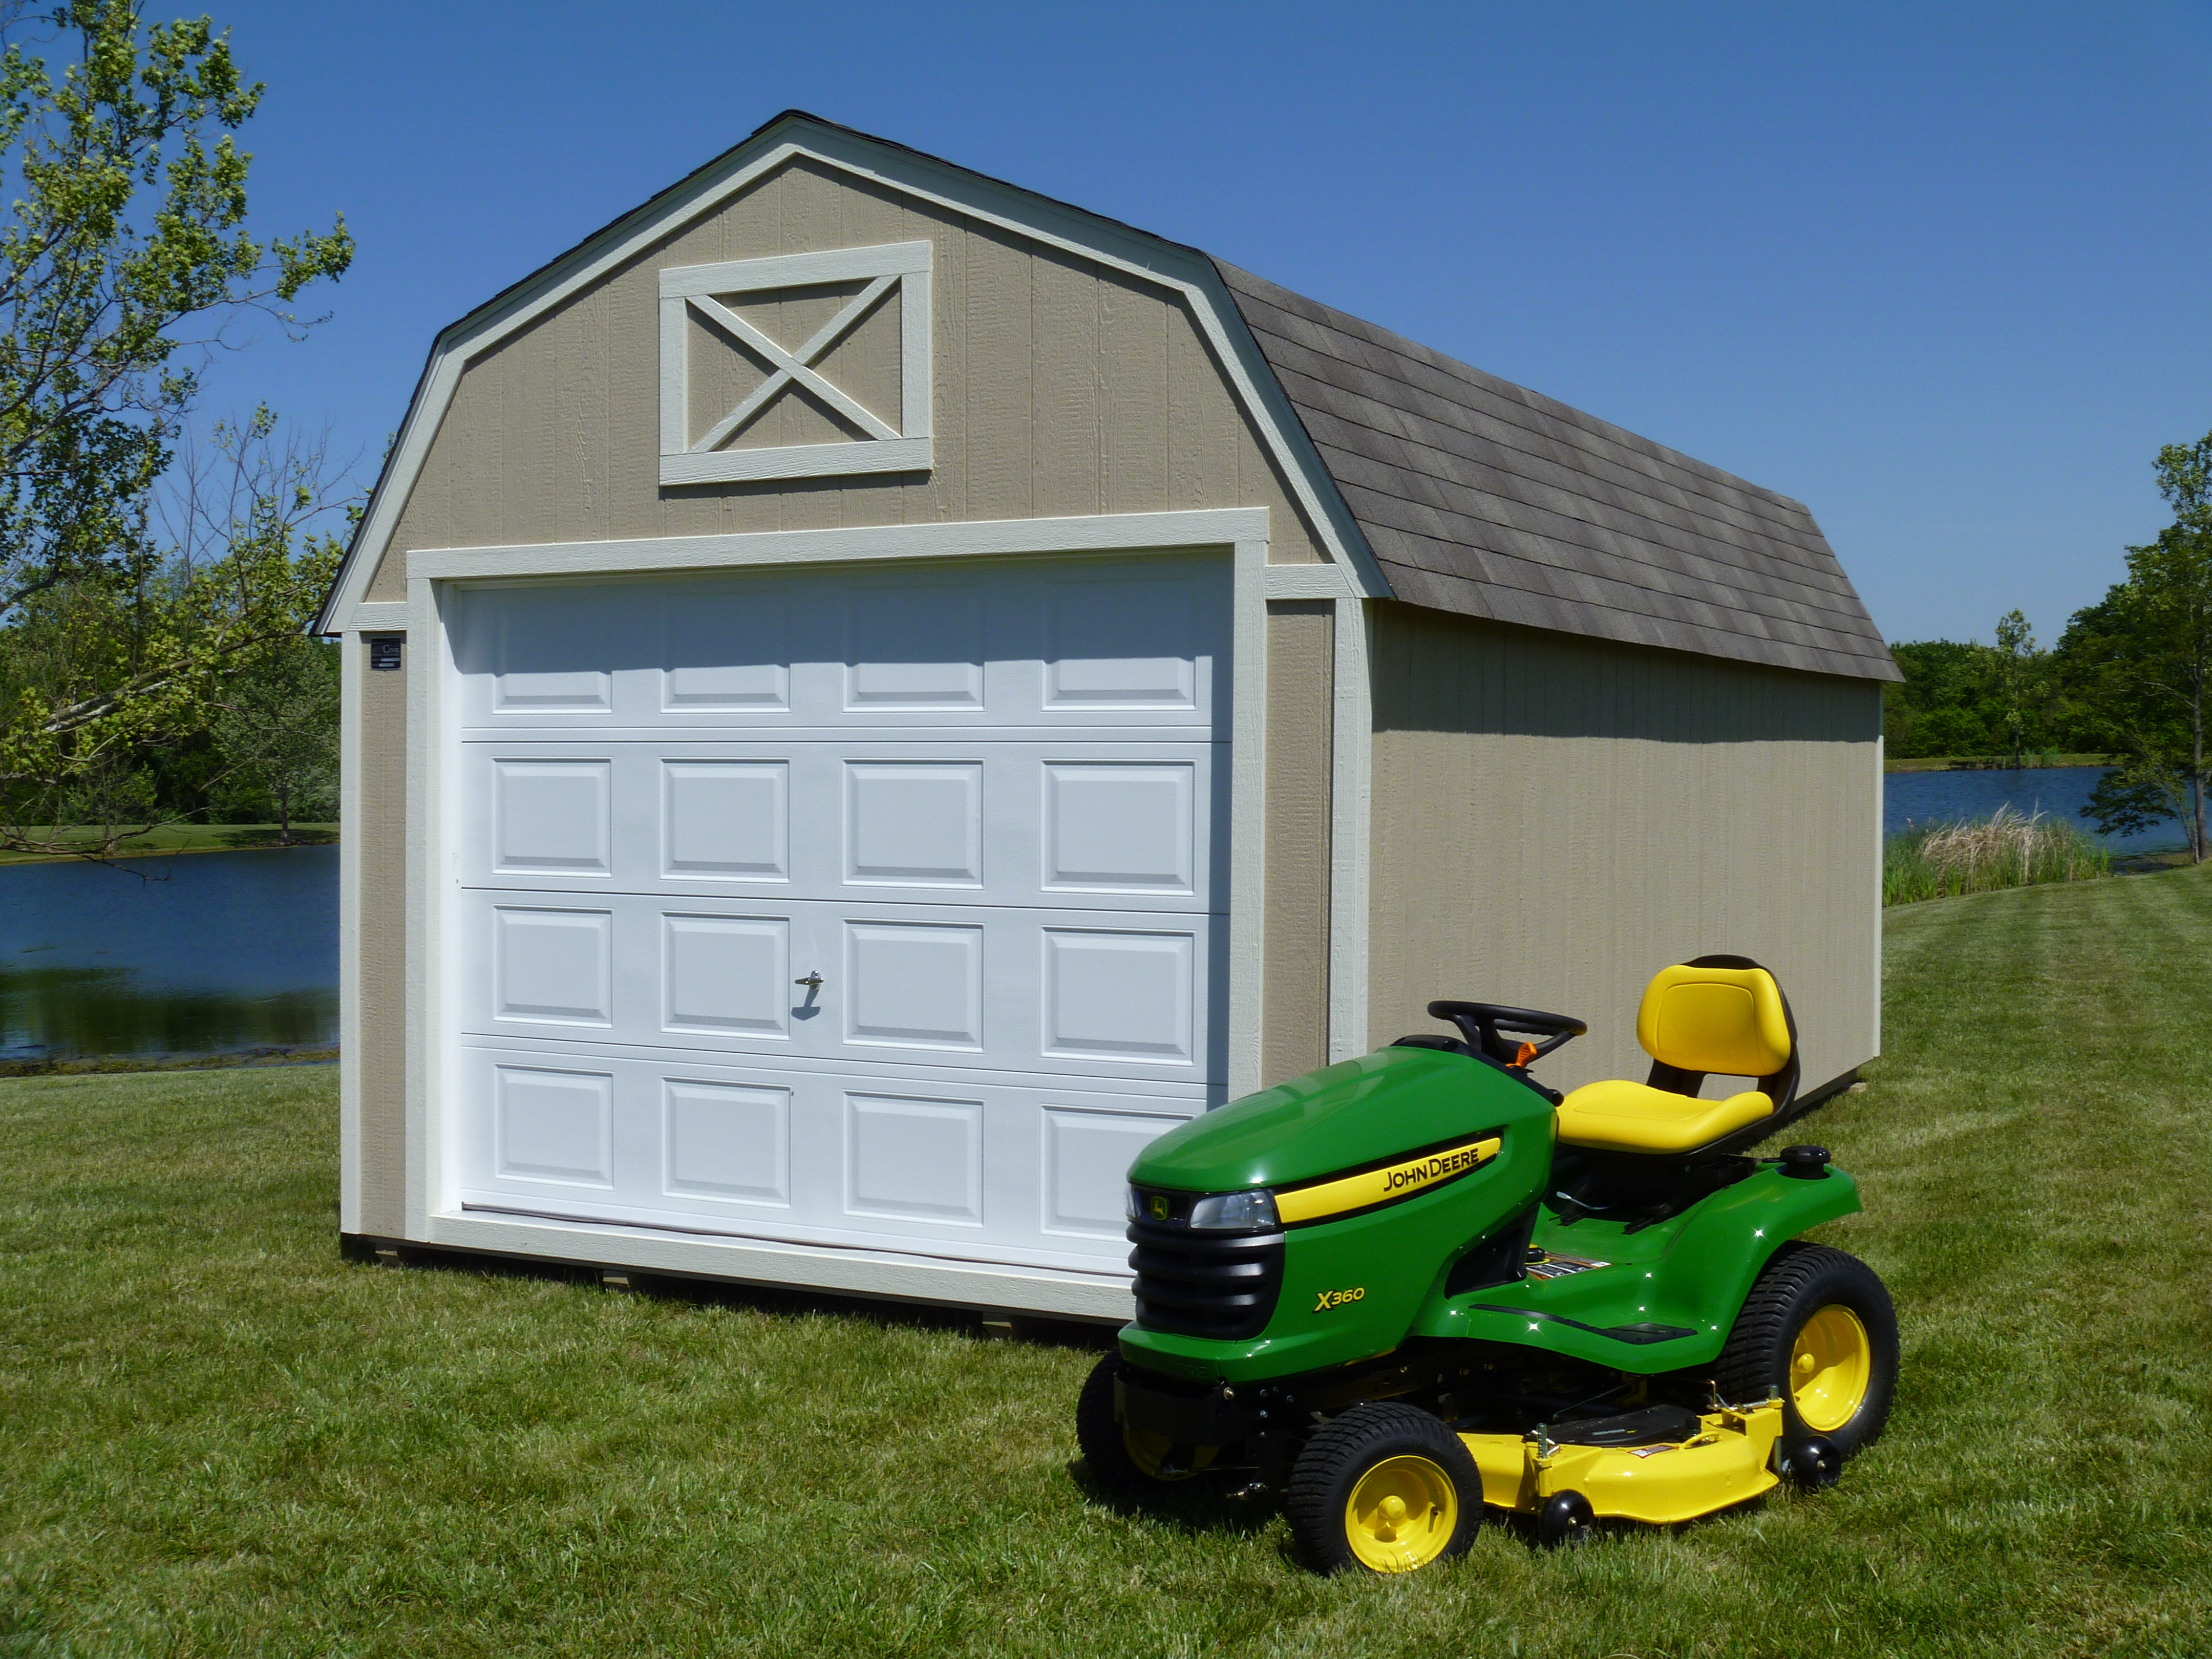 self_storage_units_vs_portable_warehouses_Cook_lawnmower_shed